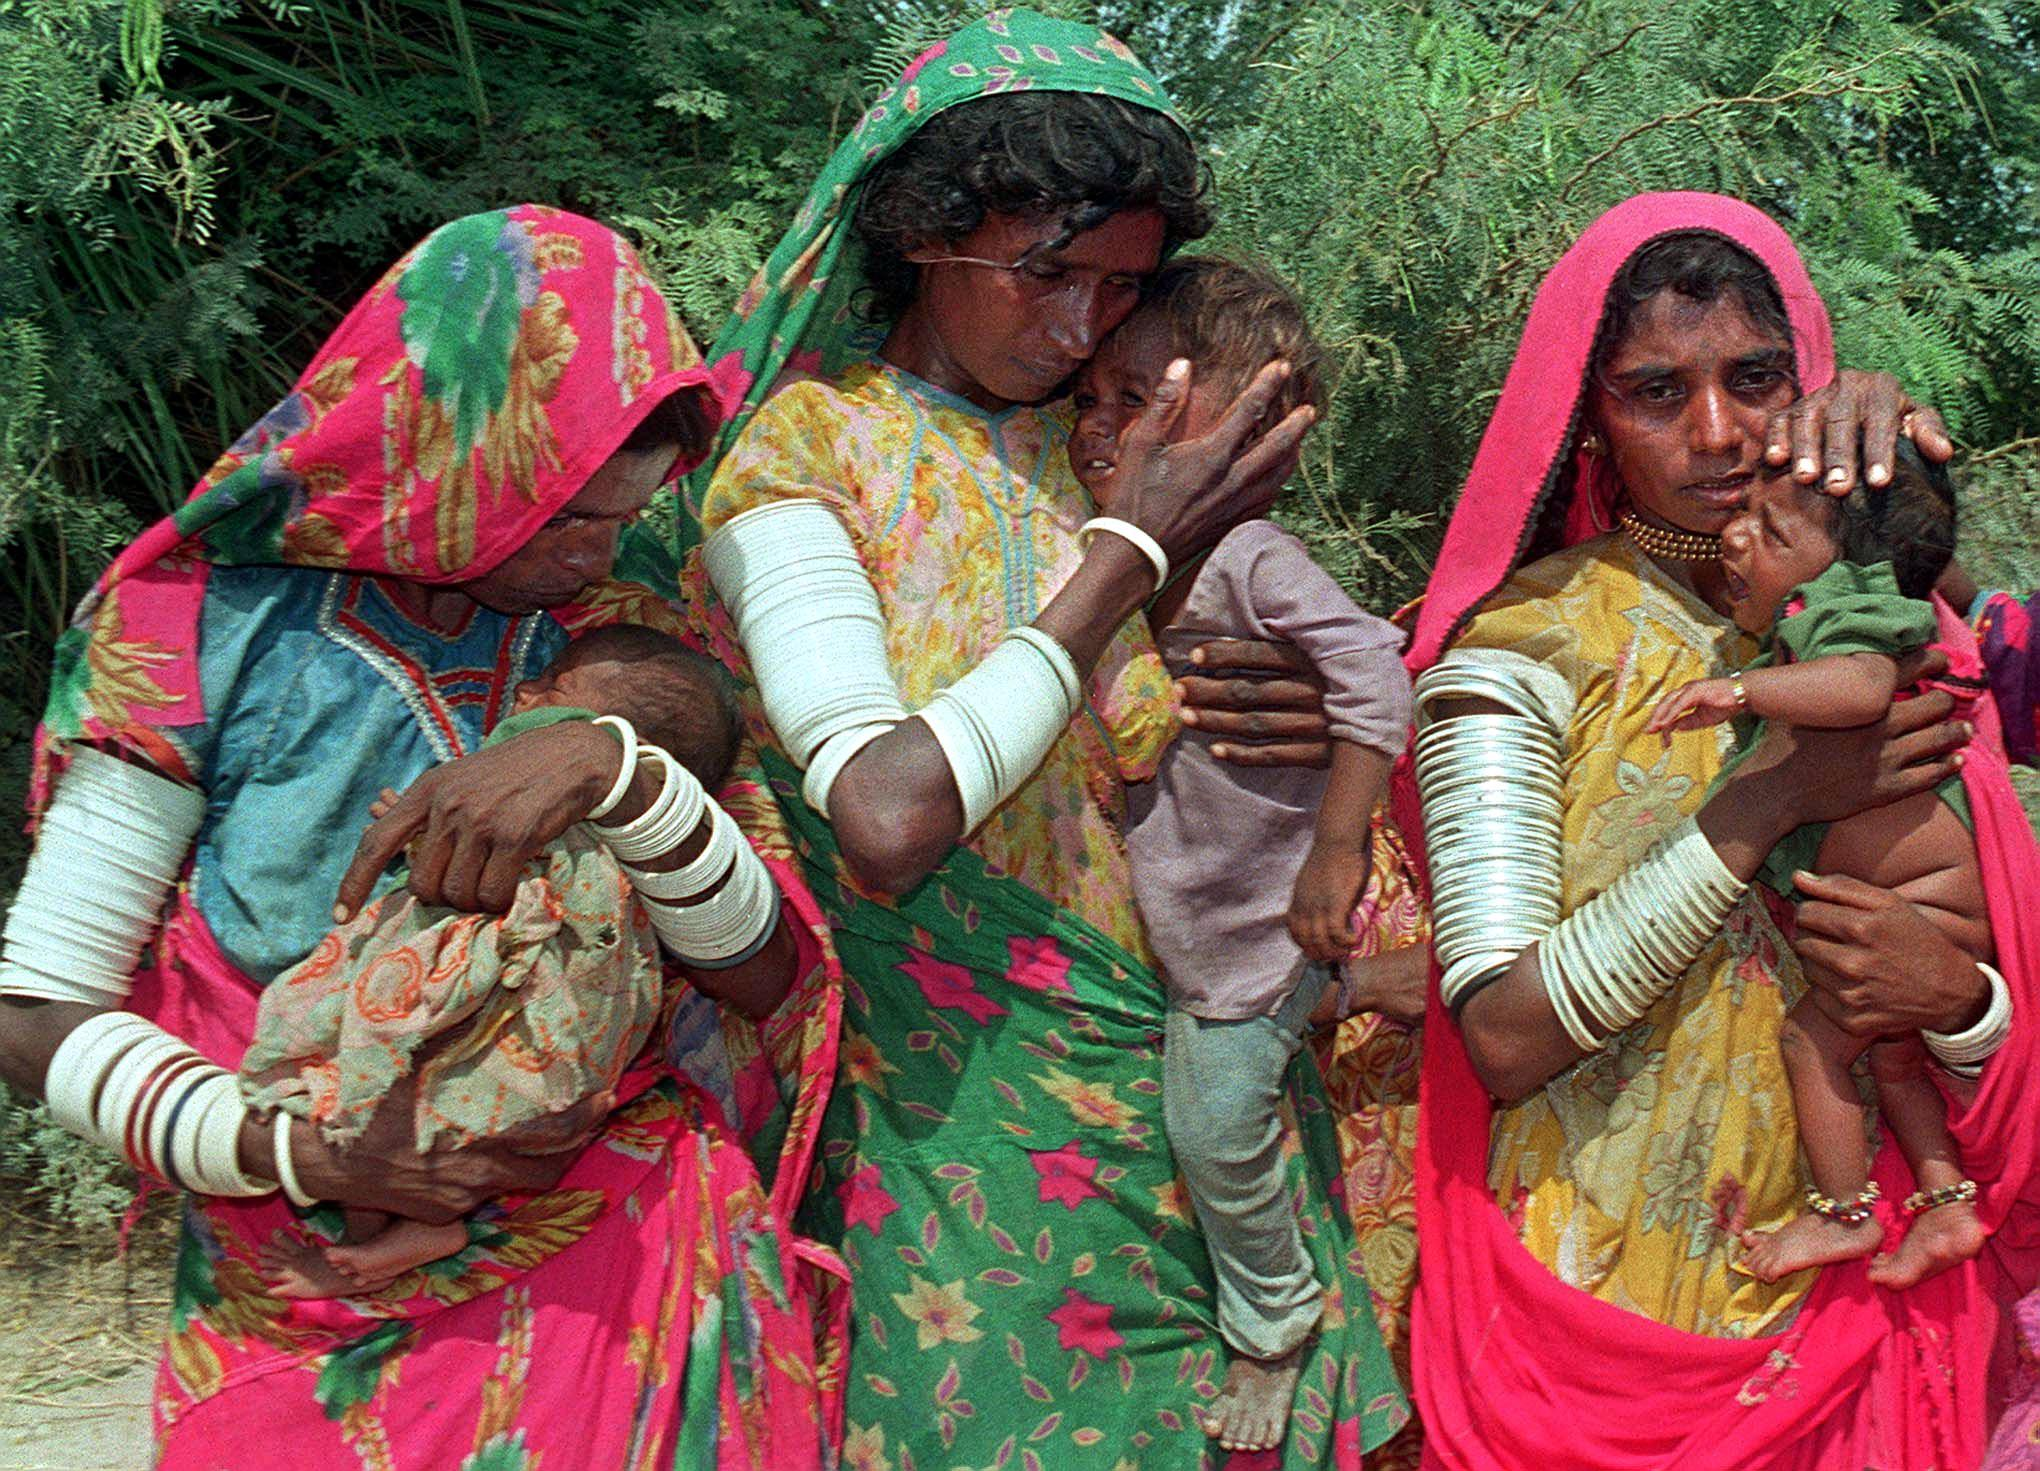 Three freed women slaves hug their children after being rescued by authorities as they arrive in the town of Matli, northeast of Karachi, Pakistan, on September 13, 1998 (AFP Photo/Yousuf Nagori)